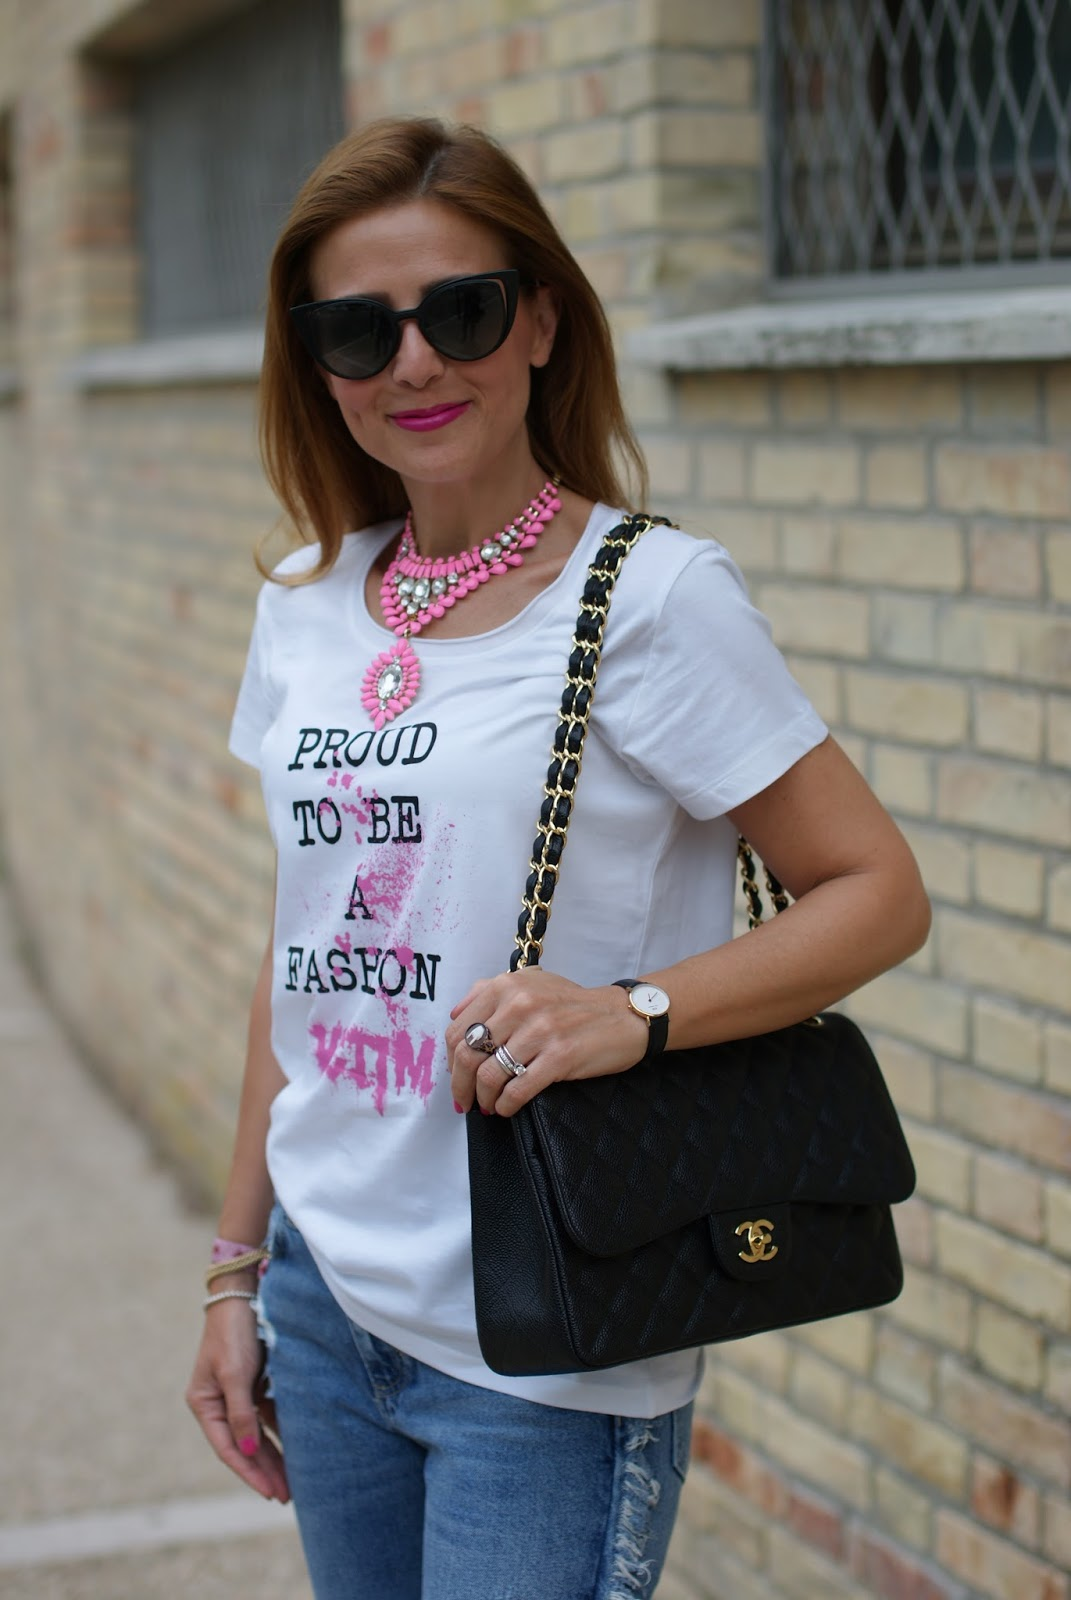 t-shirt proud to be a fashion victim and chanel 2.55 caviar bag on Fashion and Cookies fashion blog, fashion blogger style